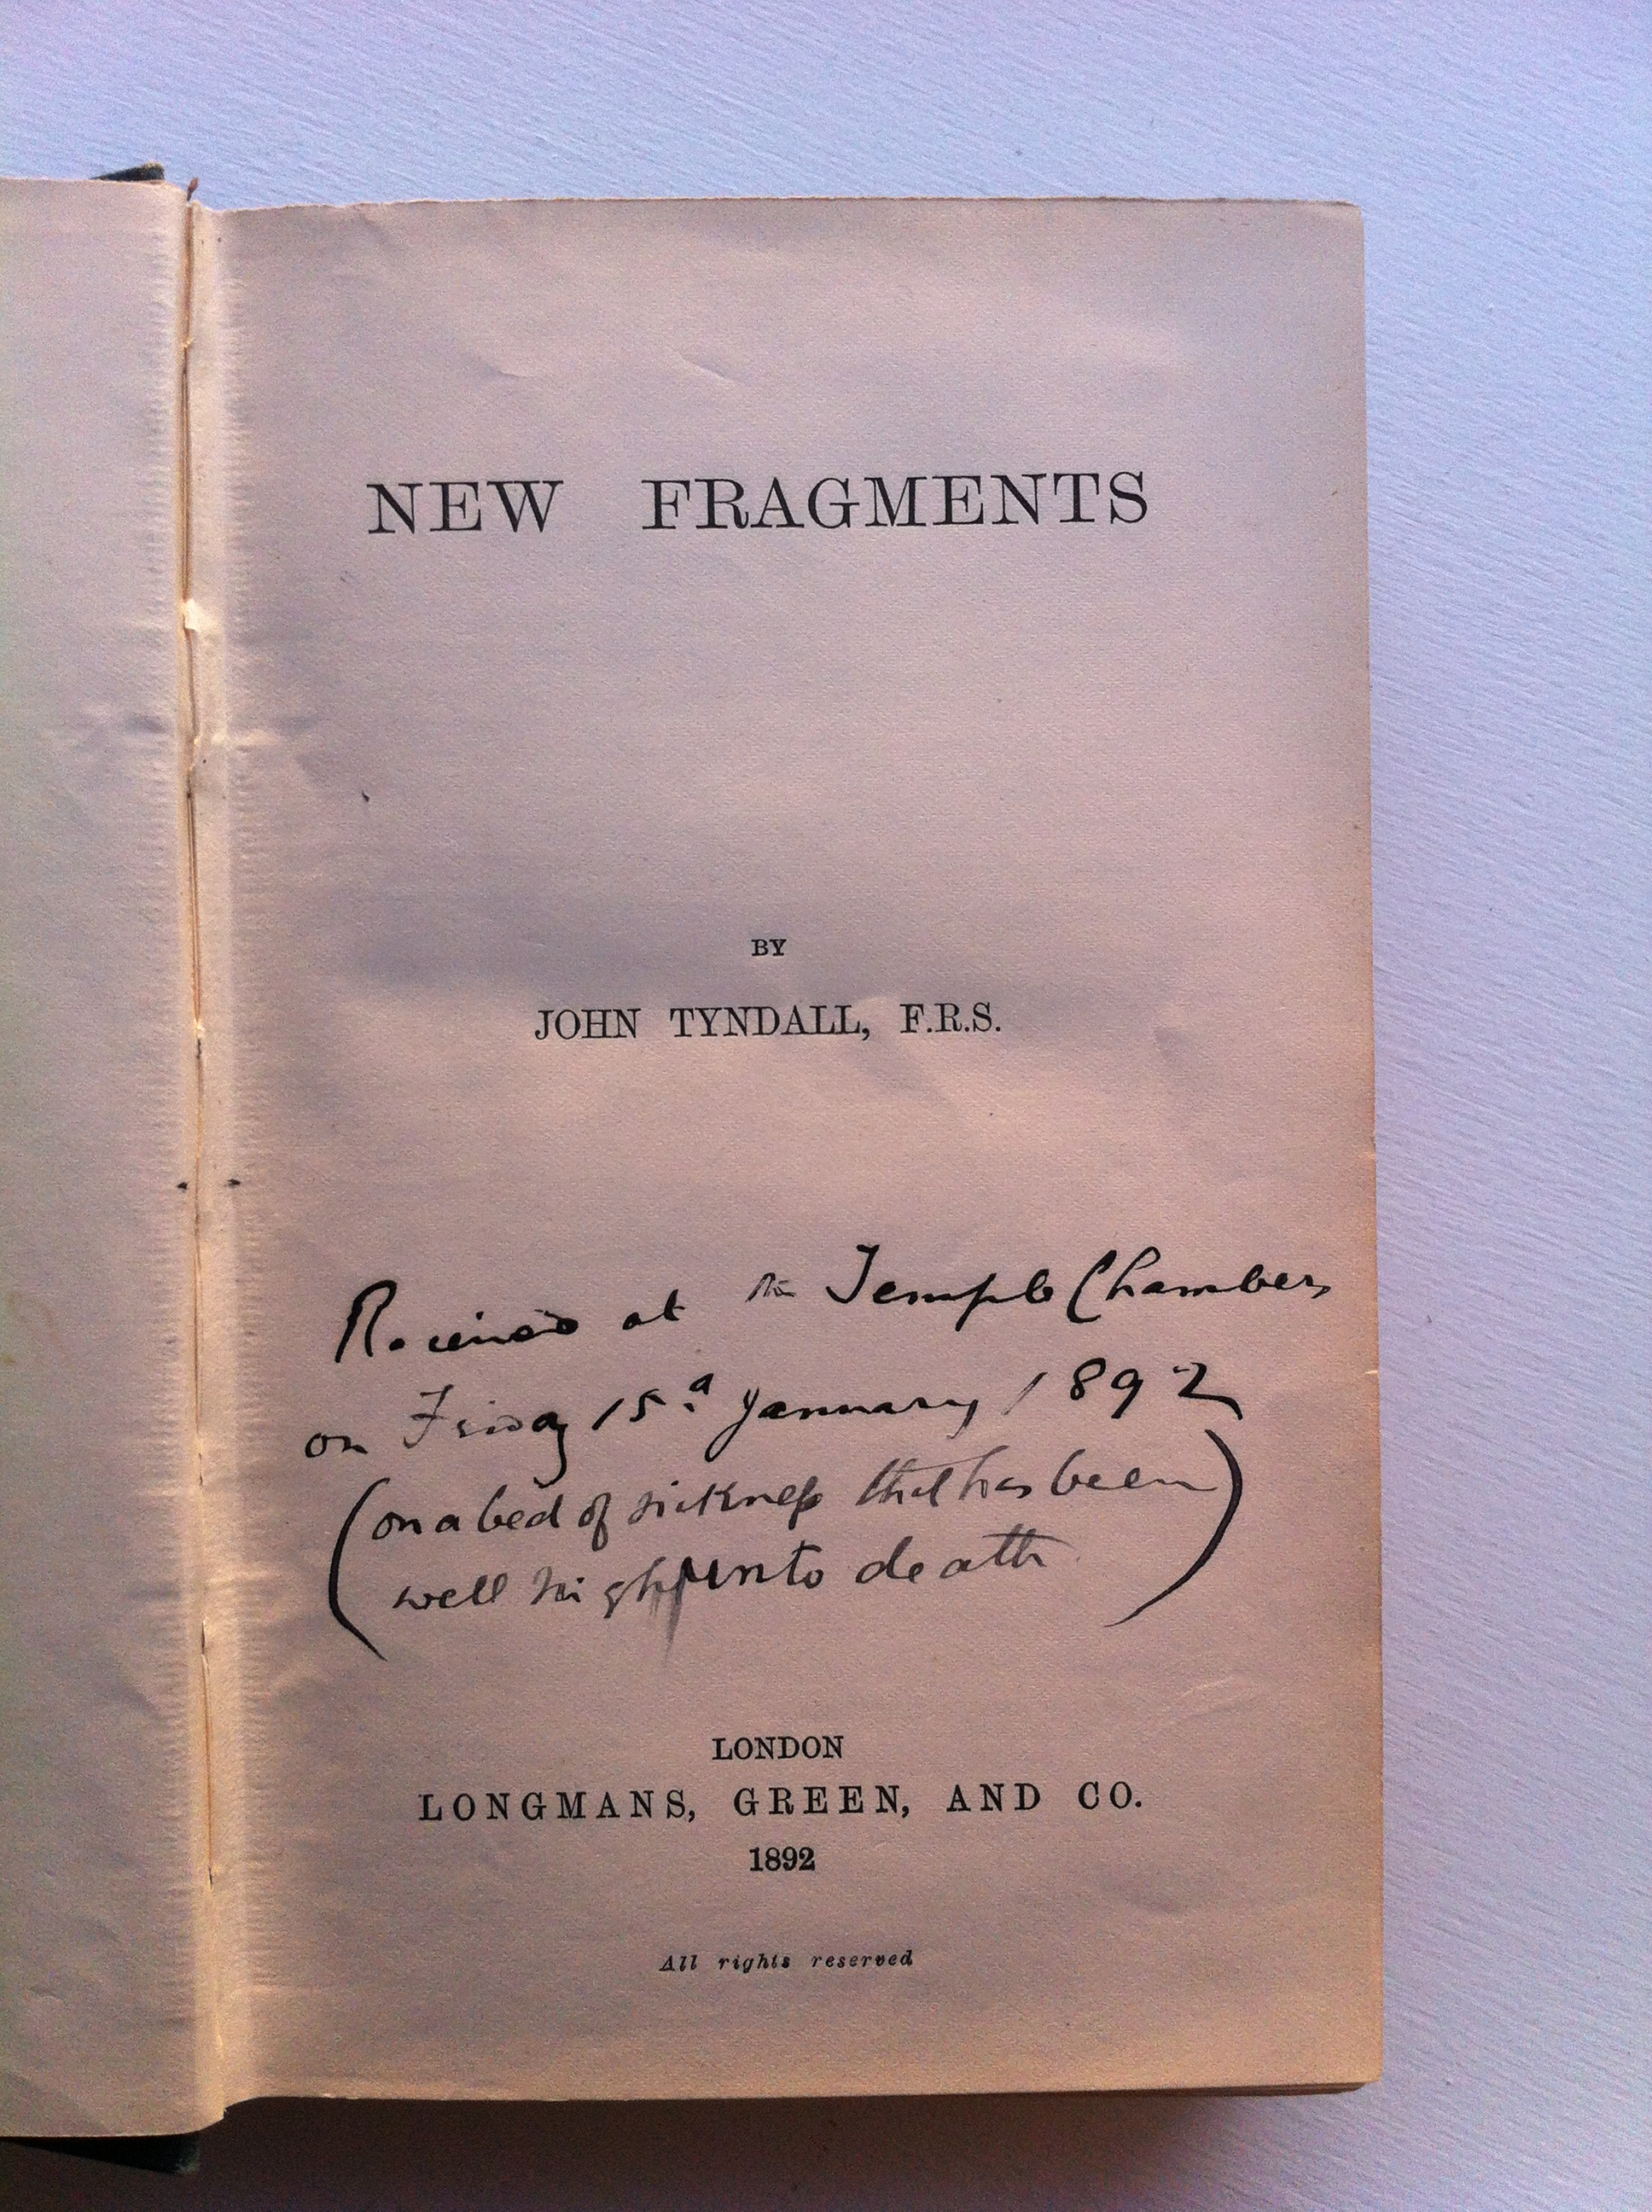 John Tyndall's 'New Fragments'.